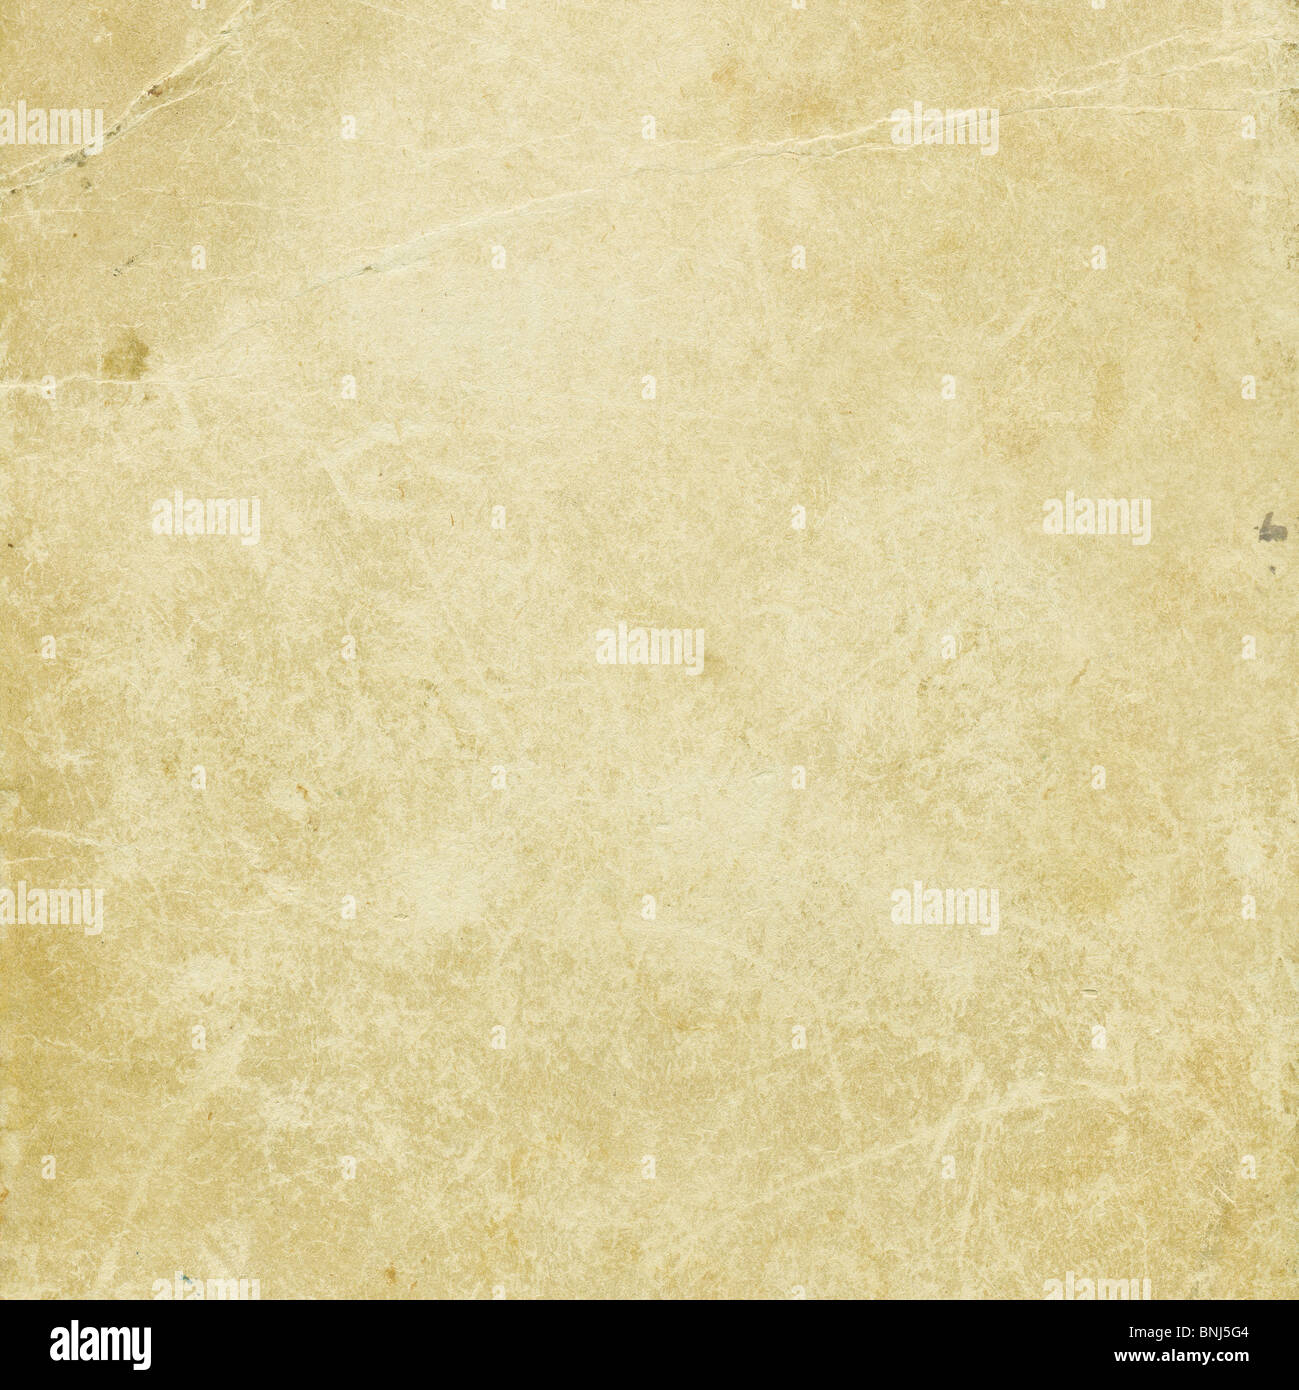 Old paper grunge background. High detailed texture. - Stock Image